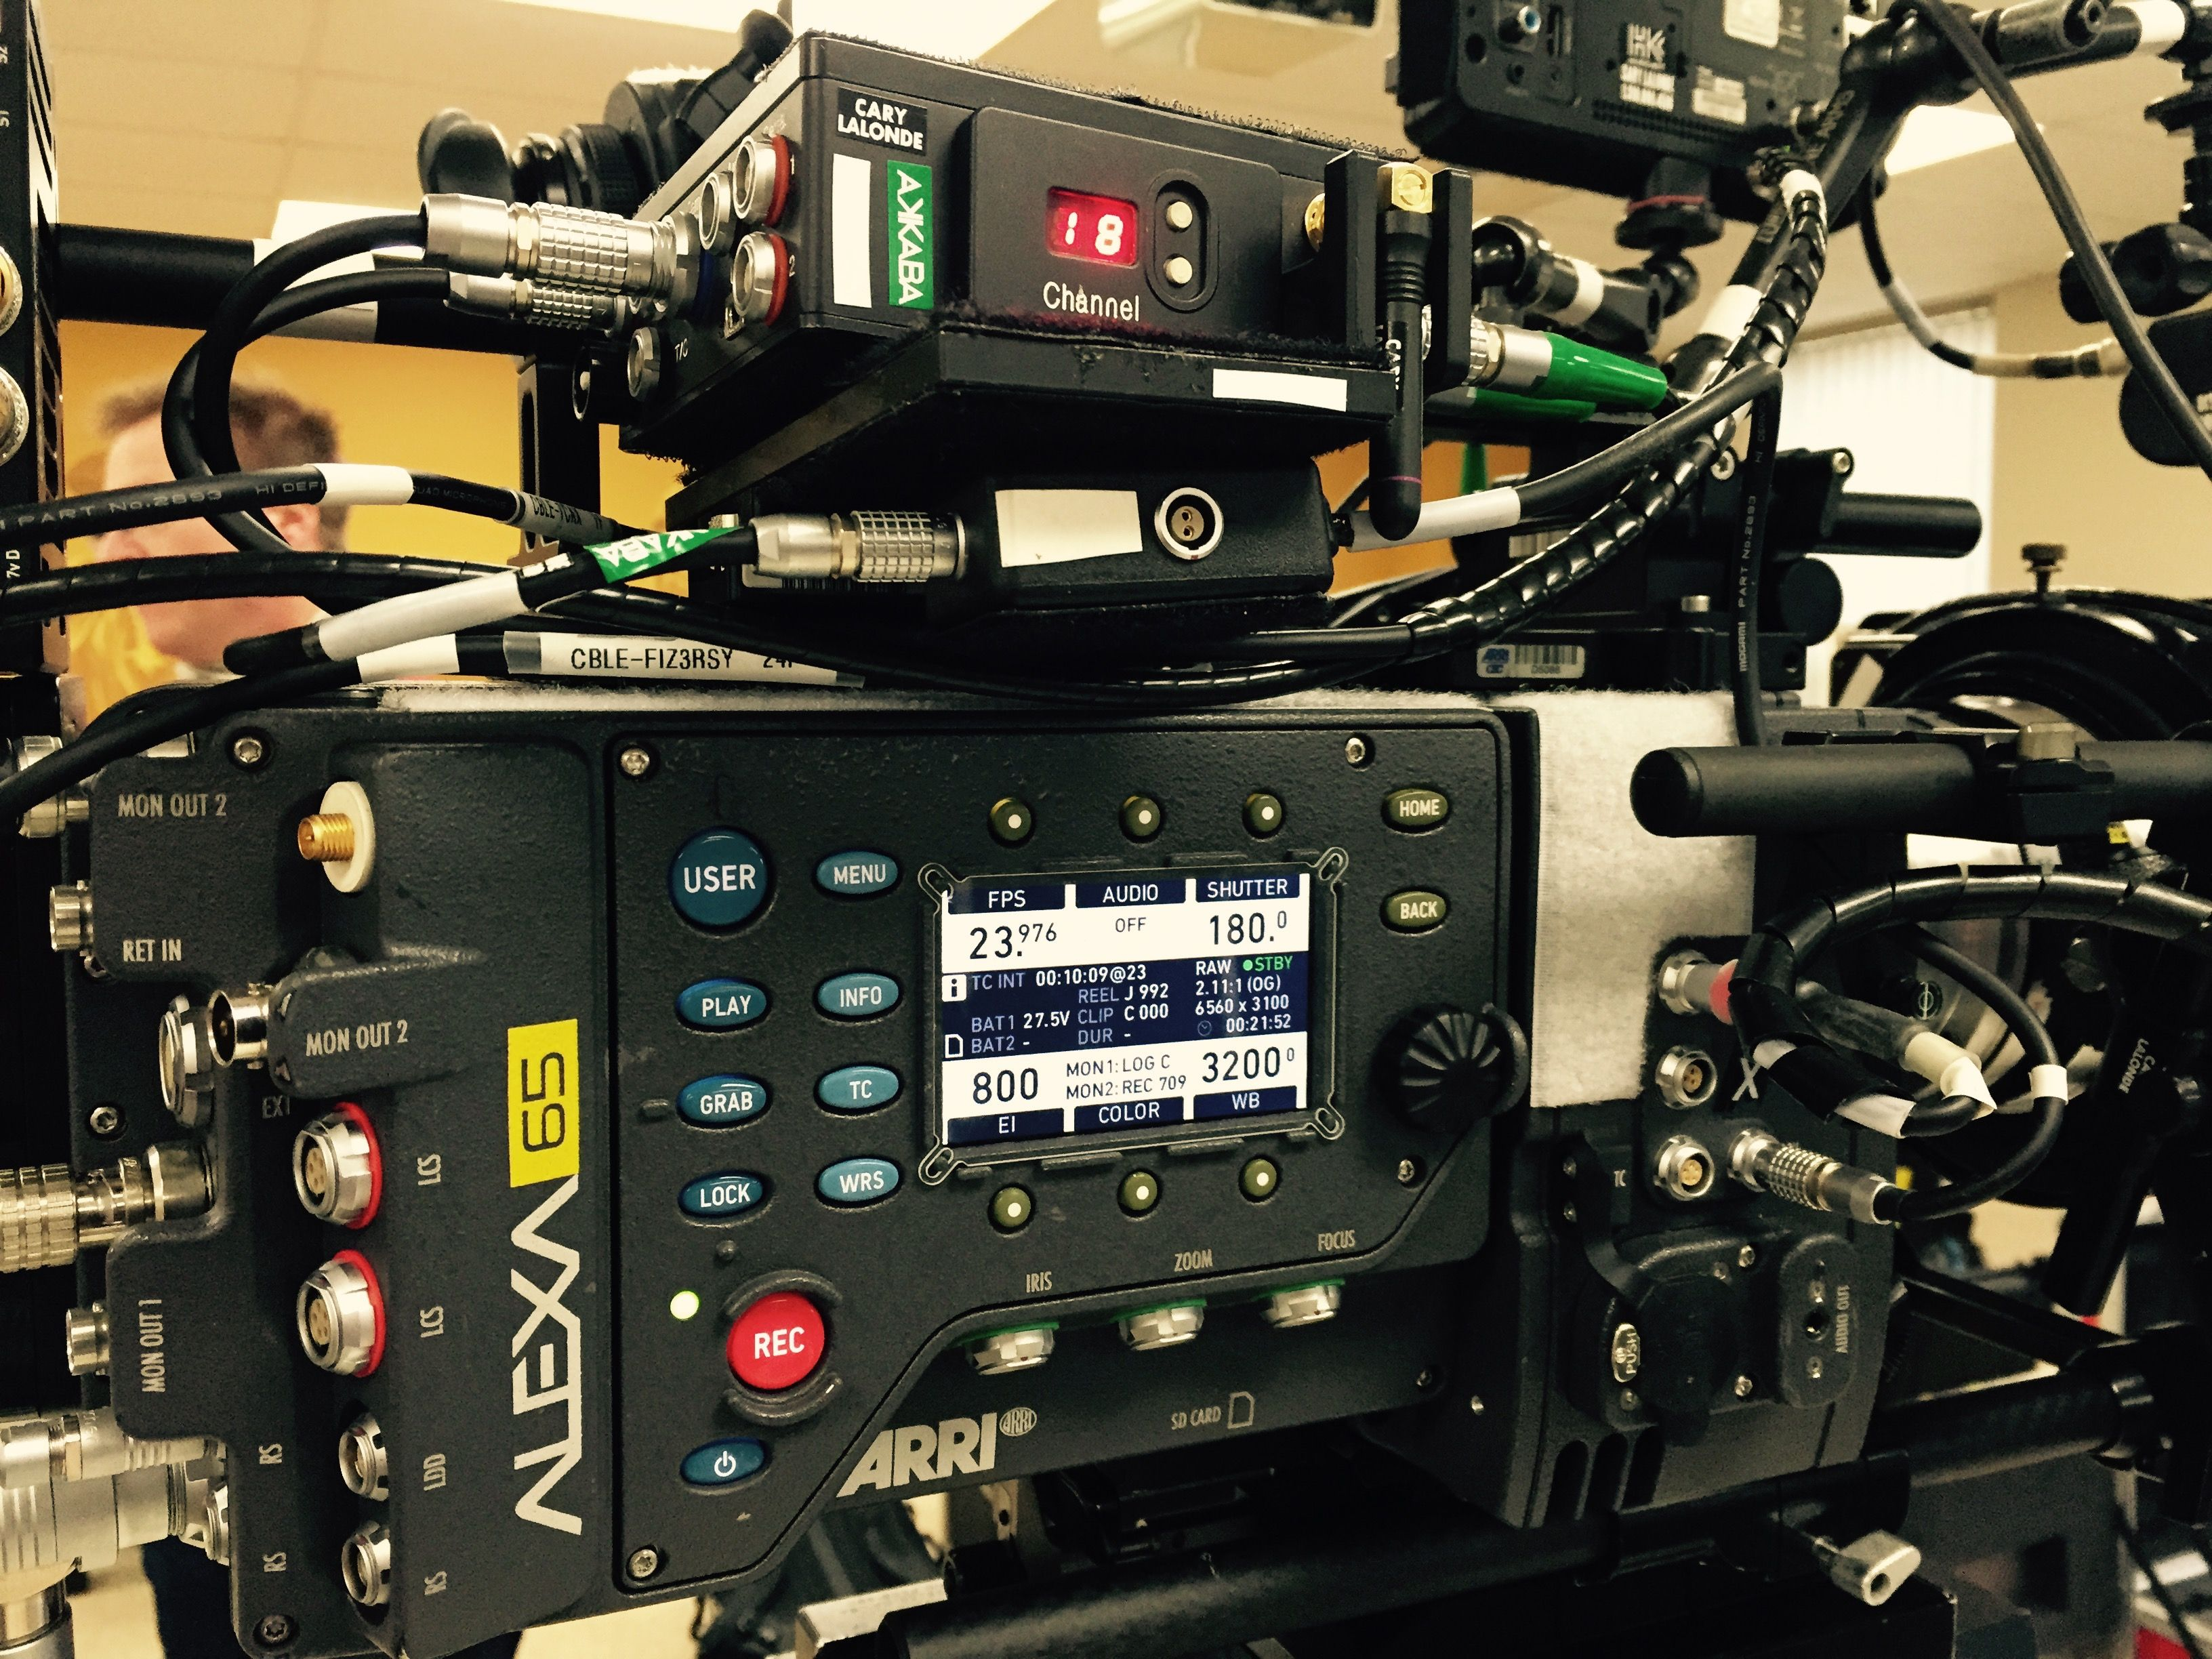 The big reveal! Two Alexa 65s from ARRI, fully loaded and